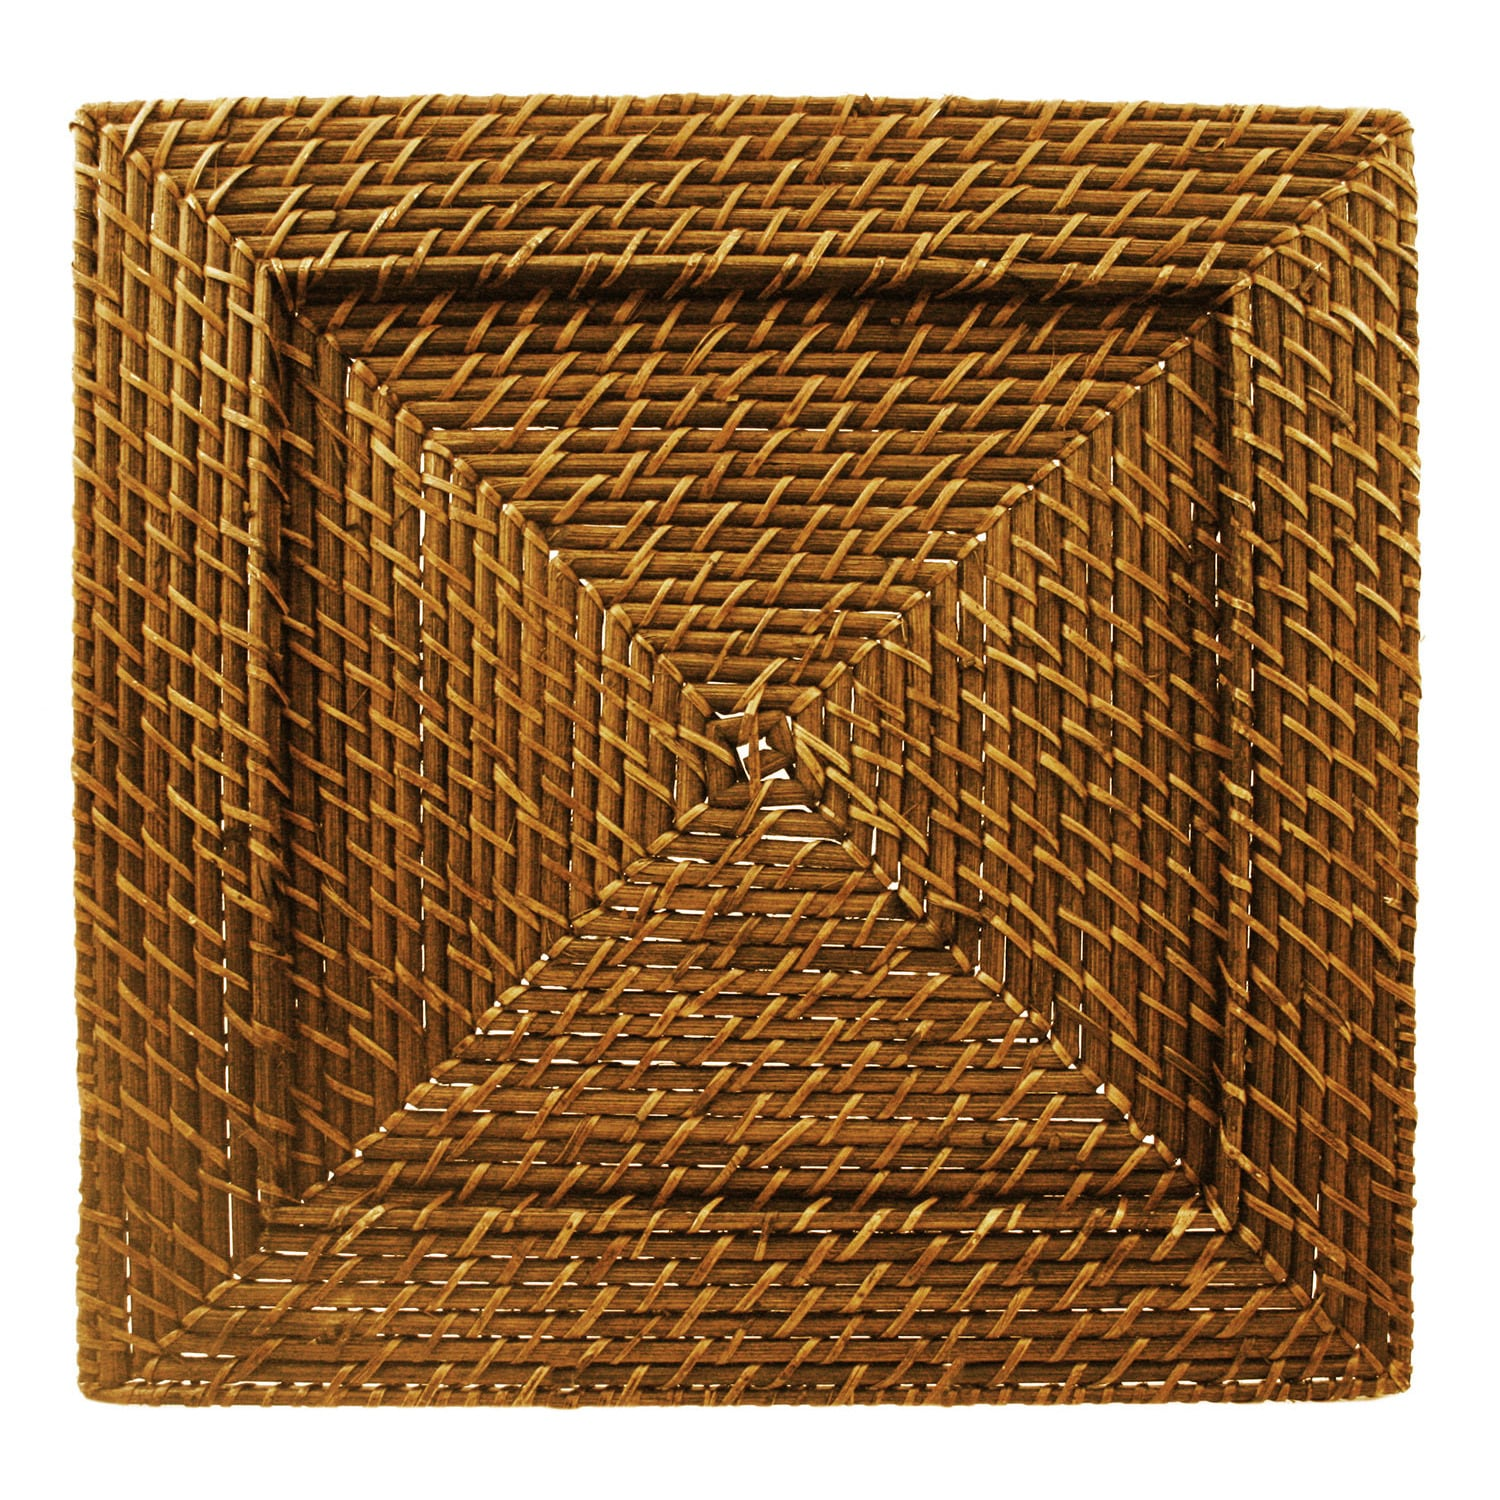 Harvest Rattan Charger Plate Set Of 4 Free Shipping On Orders Over 45 10468005